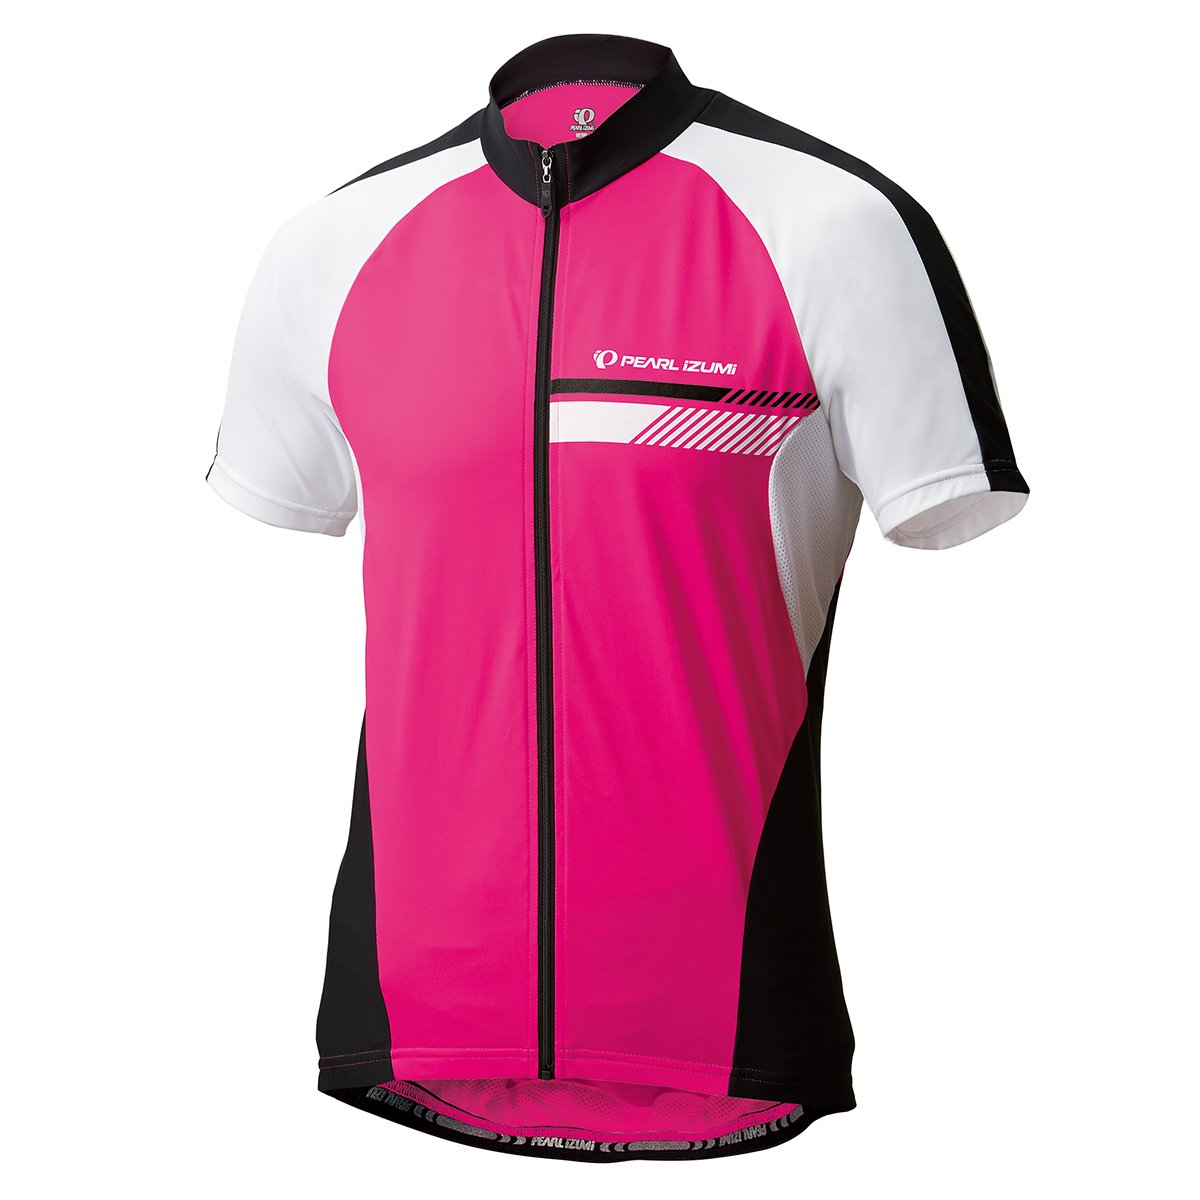 Image of cycle wear